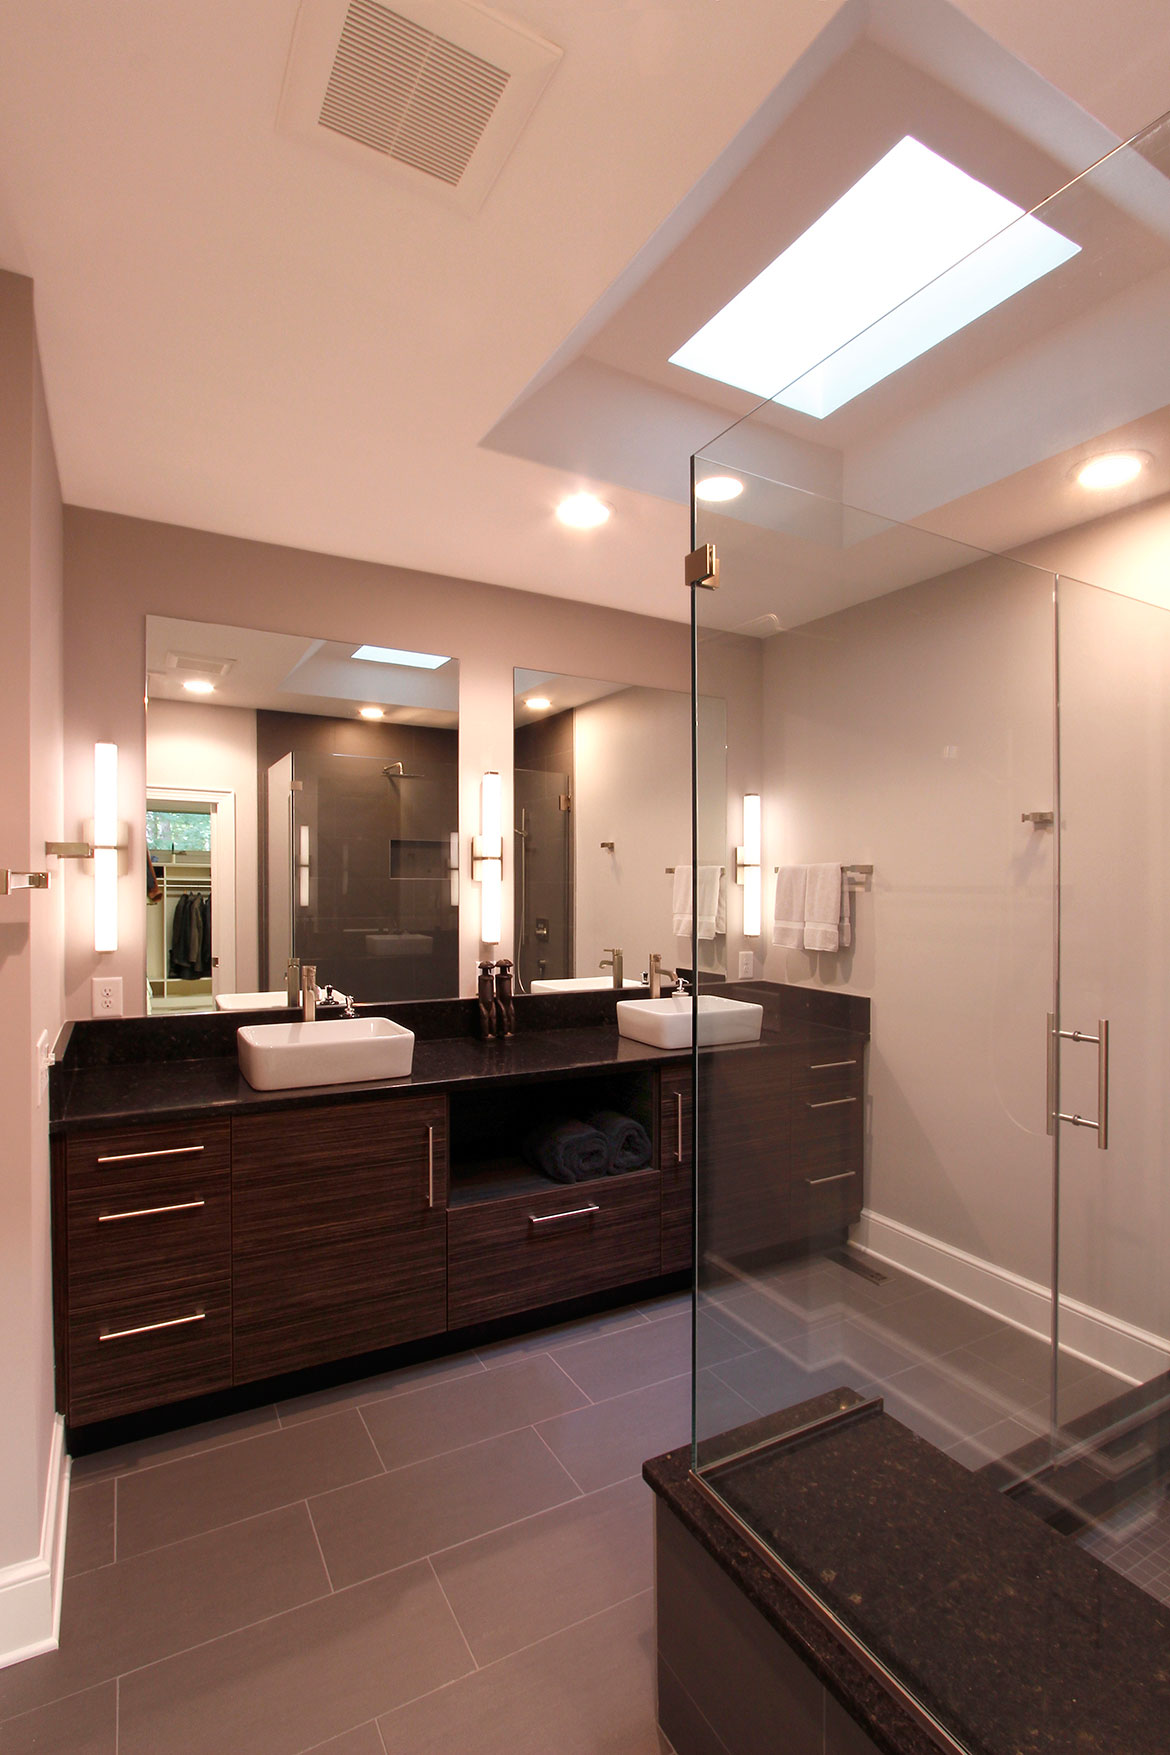 Chapel Hill Transistional Modern Bathroom Design and Remodel